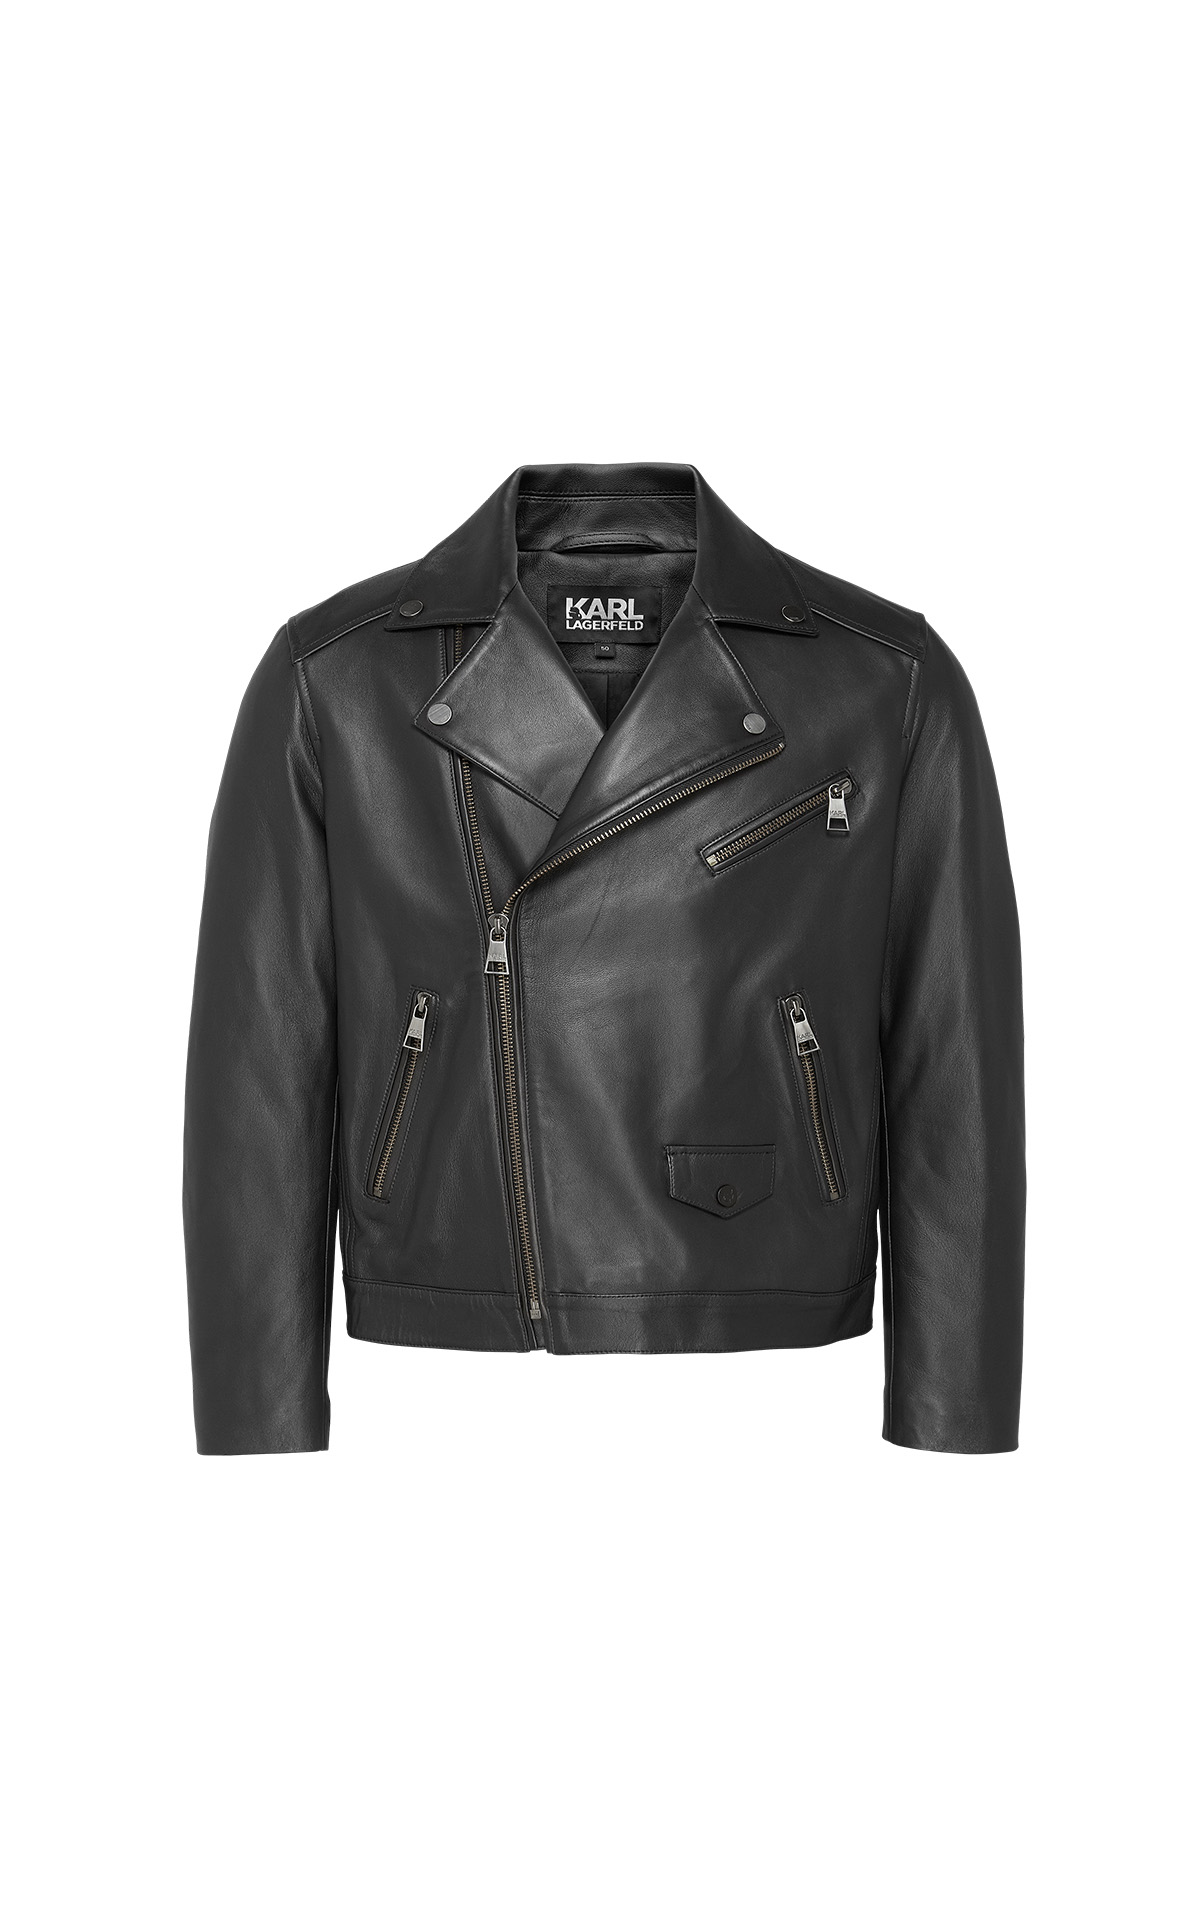 Karl Lagerfeld Modina leather jacket at The Bicester Village Shopping Collection